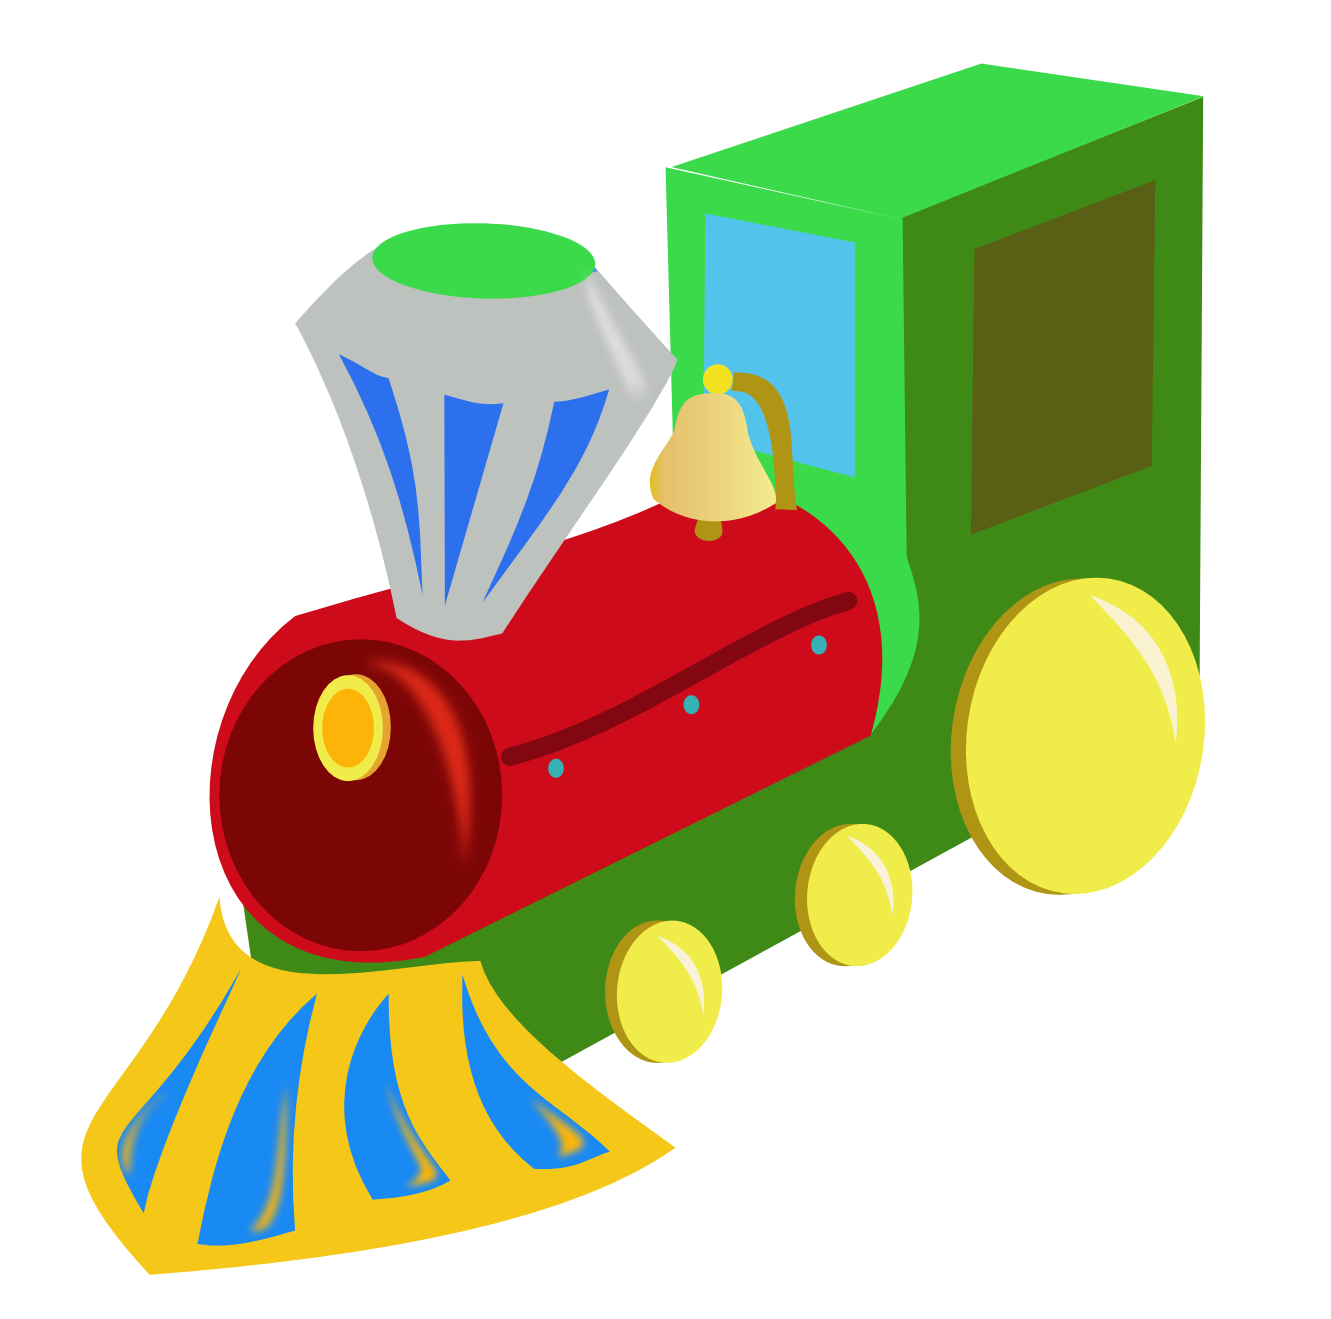 Toy Train Clipart - ClipArt Best